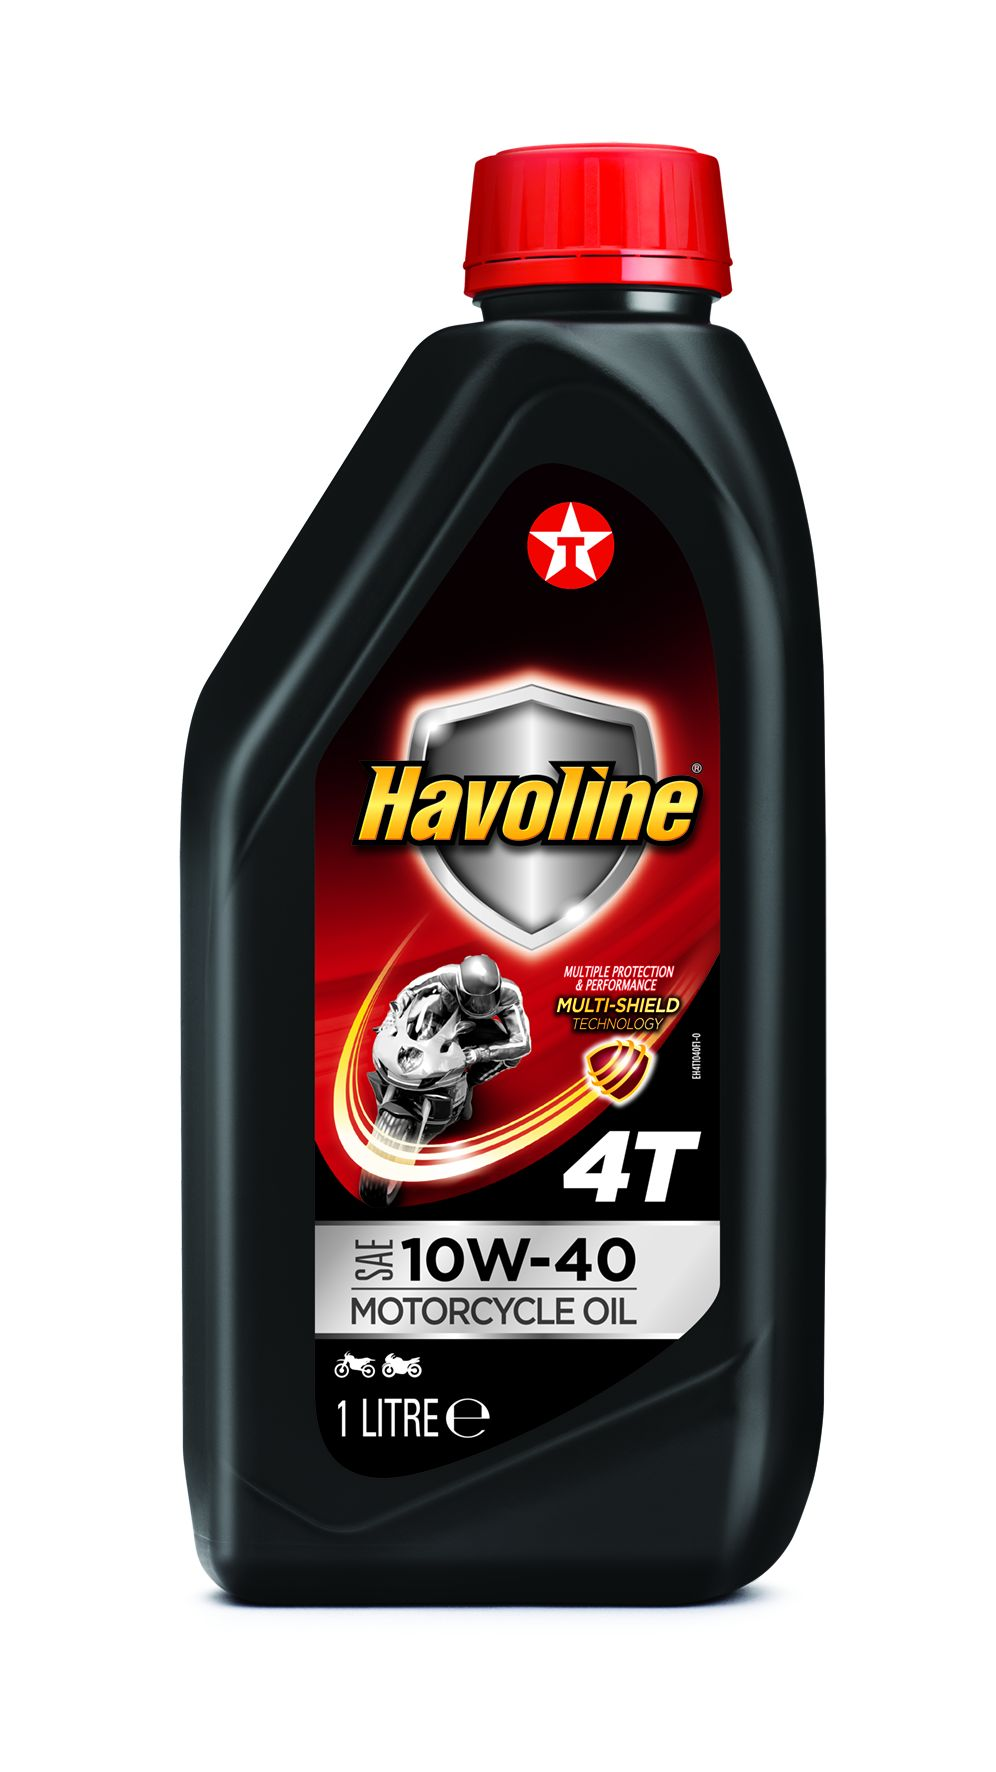 HAVOLINE 4T MOTORCYCLE OIL                10W-40